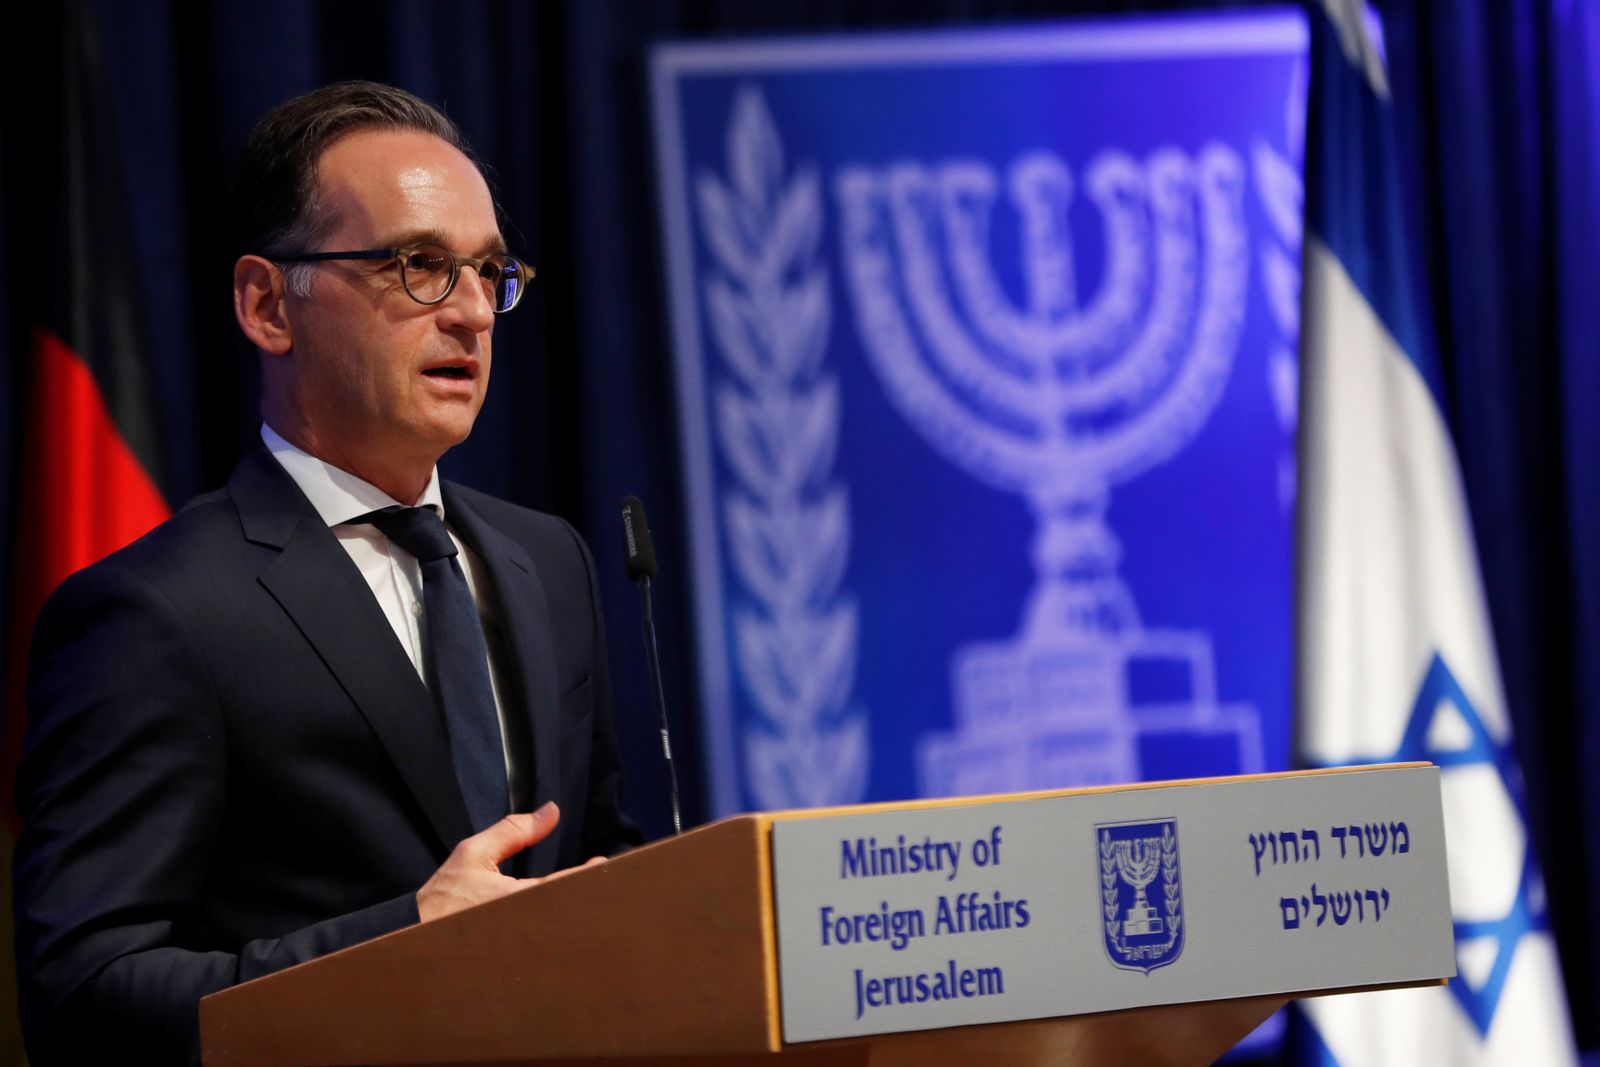 German Foreign Minister Heiko Maas gestures as he speaks during a news conference with his Israeli counterpart Gabi Ashkenazi in Jerusalem